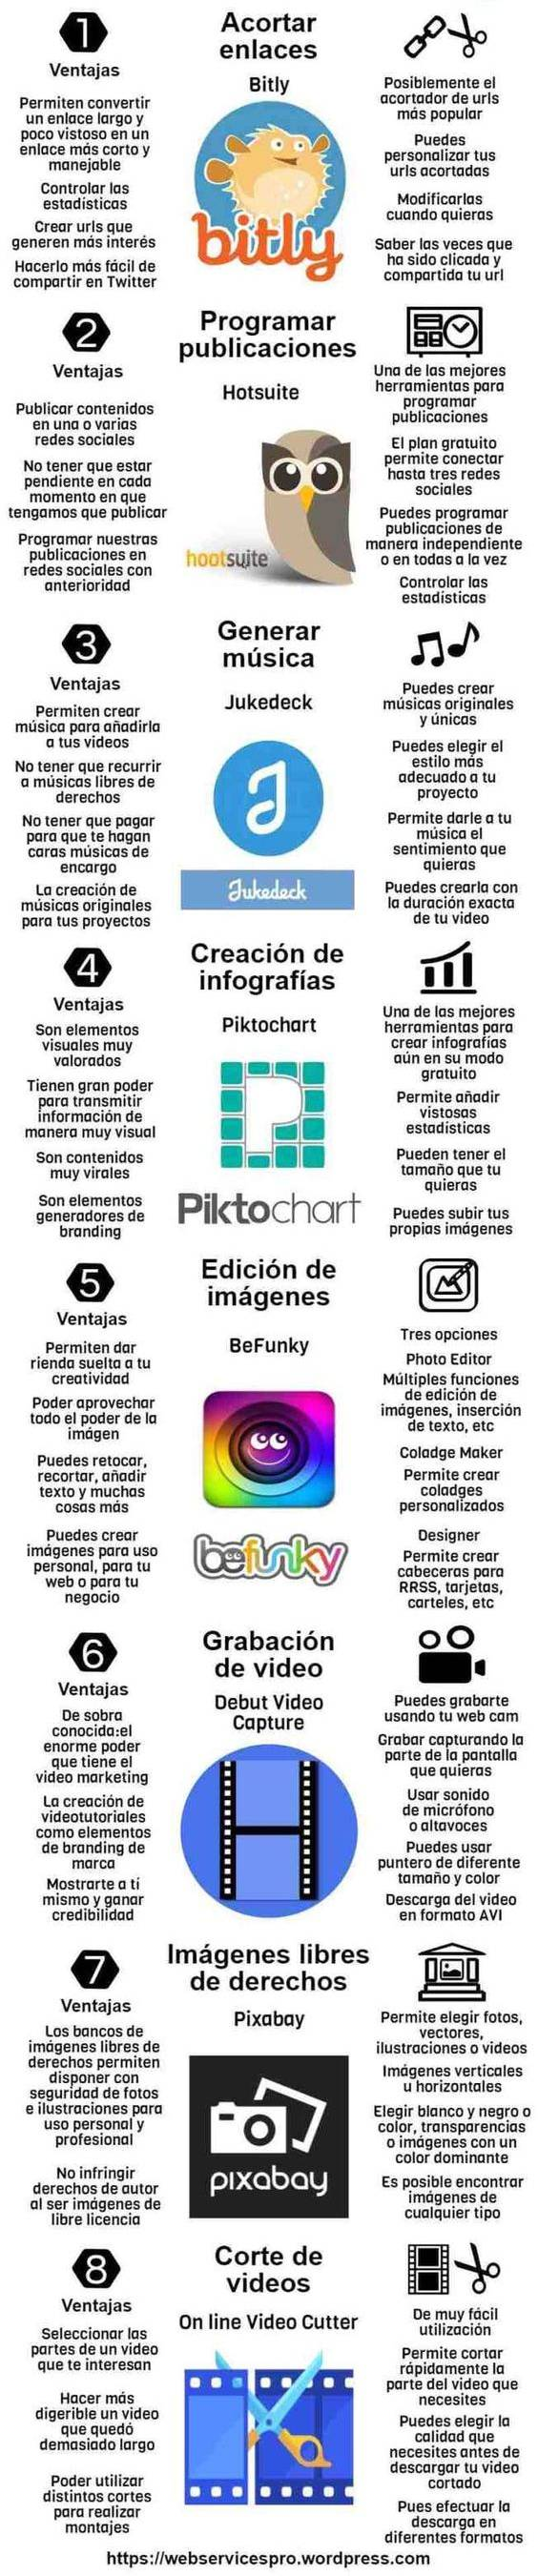 herramientas-online-marketing-digital-infografia